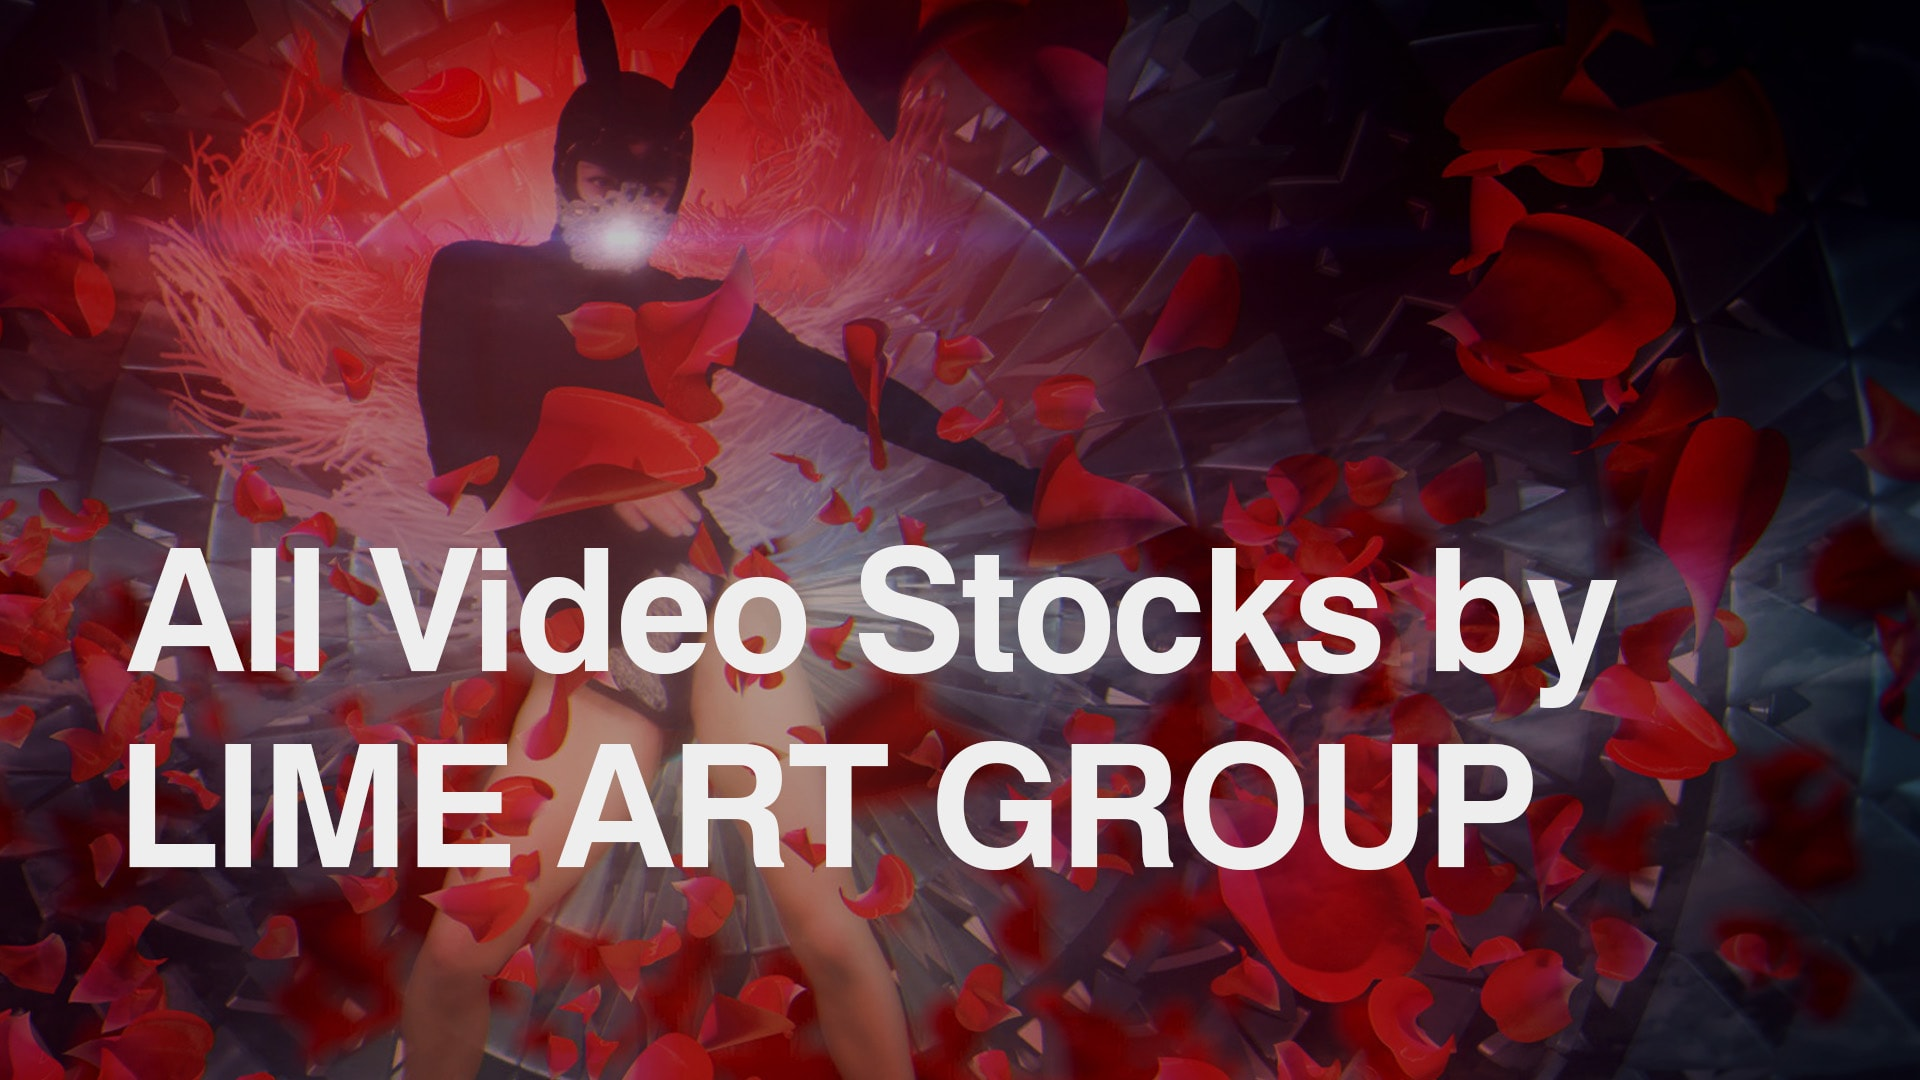 All video stocks by lime art group